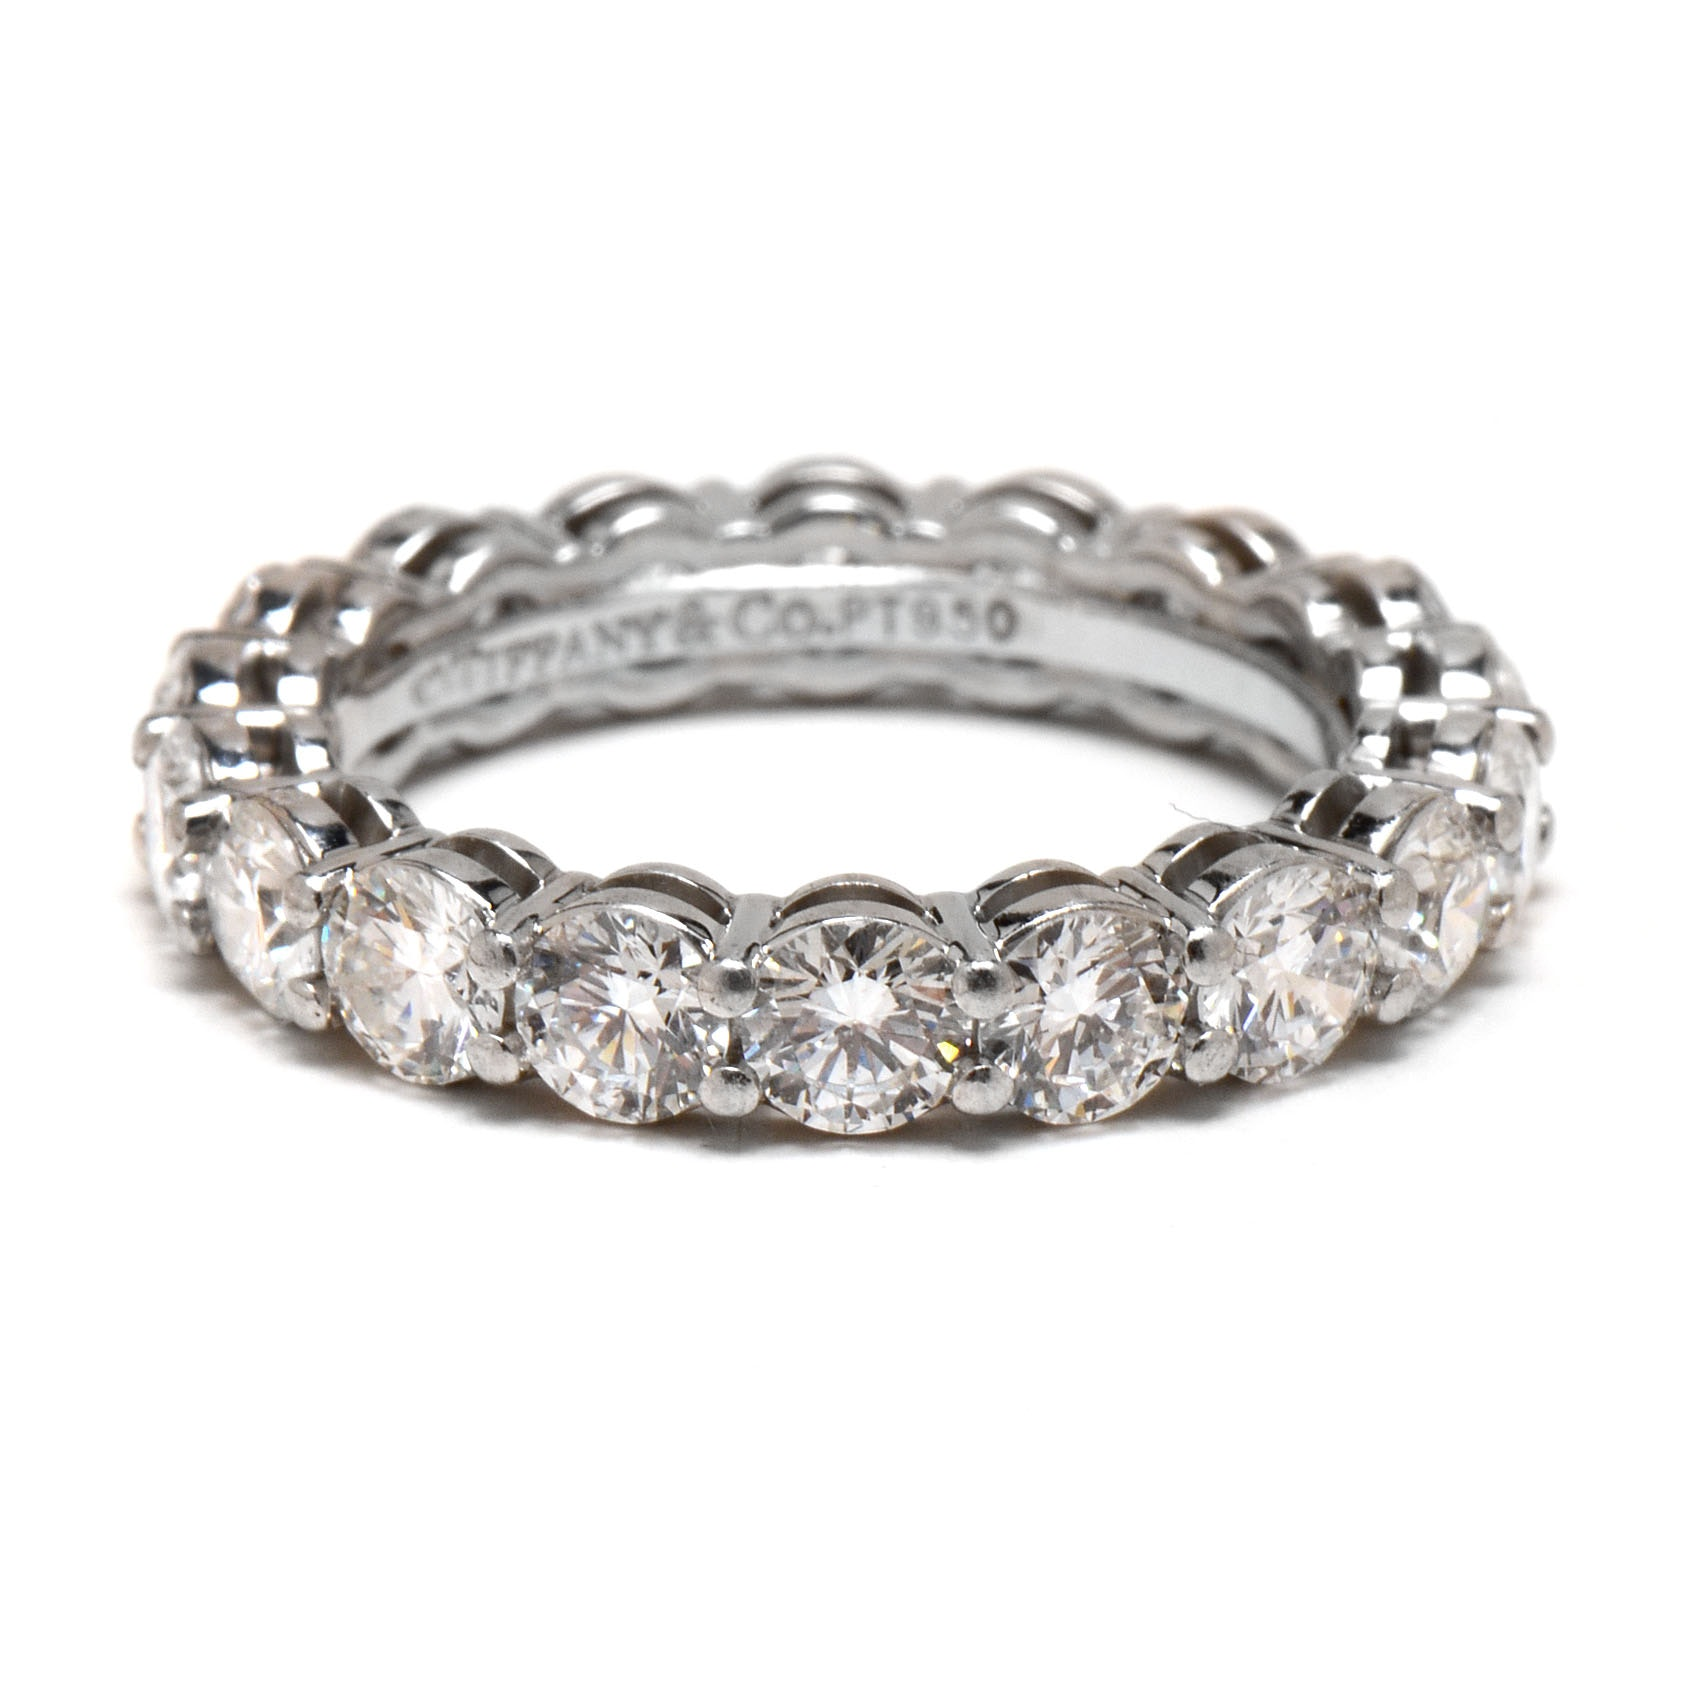 Tiffany & Co. Platinum and Diamond Eternity Band with 2.88 CTW in Diamonds